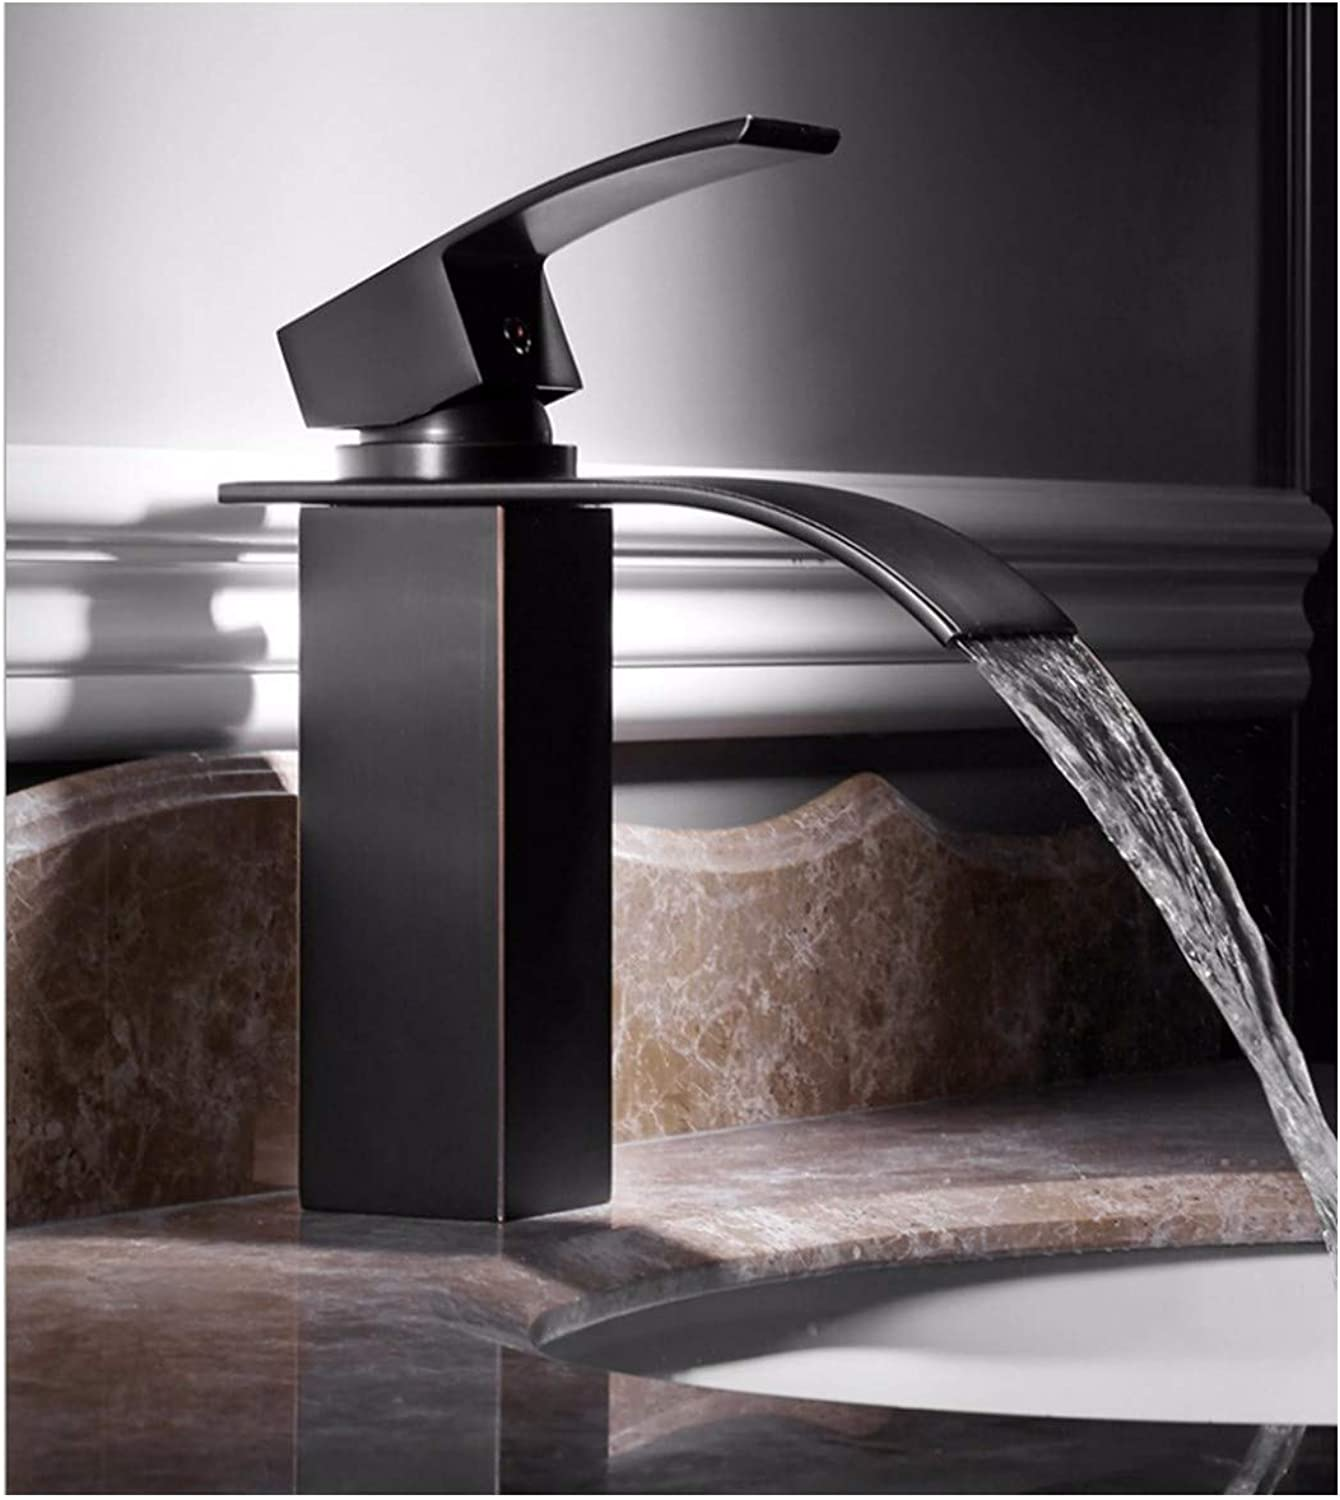 PatTheTap Vintage Kitchen Bathroom Waterfall Faucet Retro Brushed Black Brass Tap Sink Basin Water Tap Hot and Cold Mixing Water-Tap Square Seat 1-Hole 1 Handle